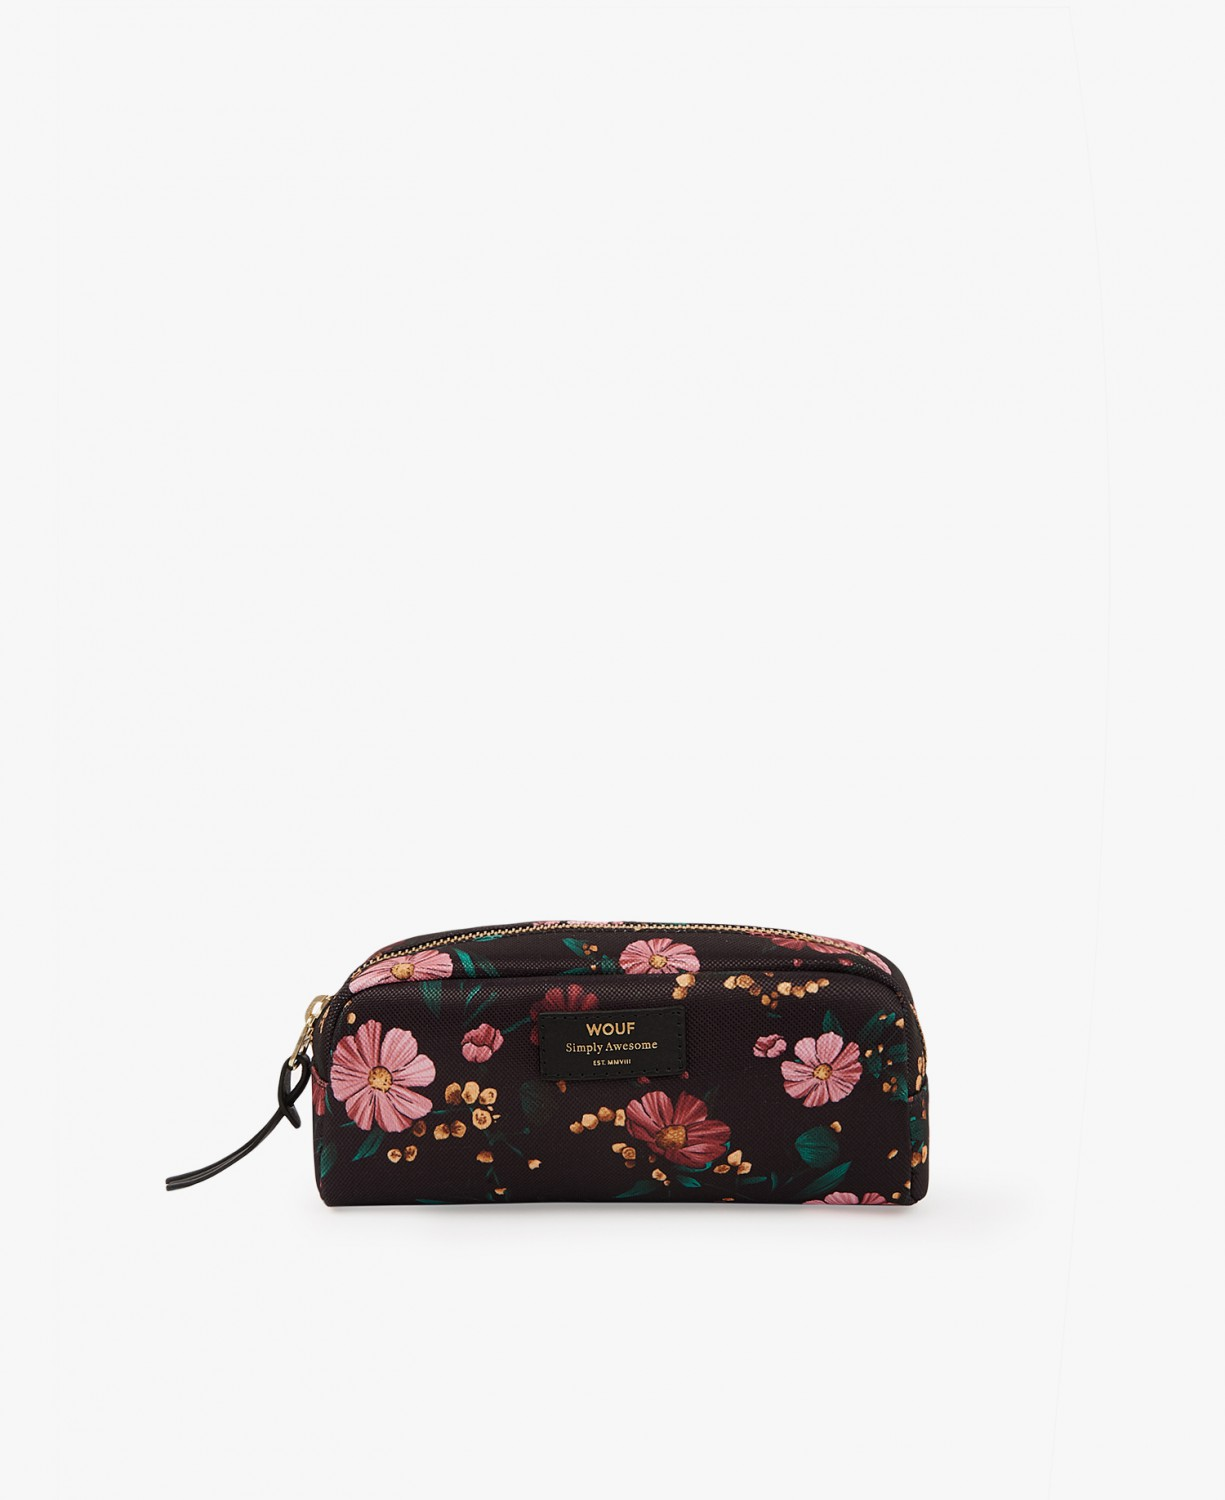 WOUF | Black Flowers  makeup bag